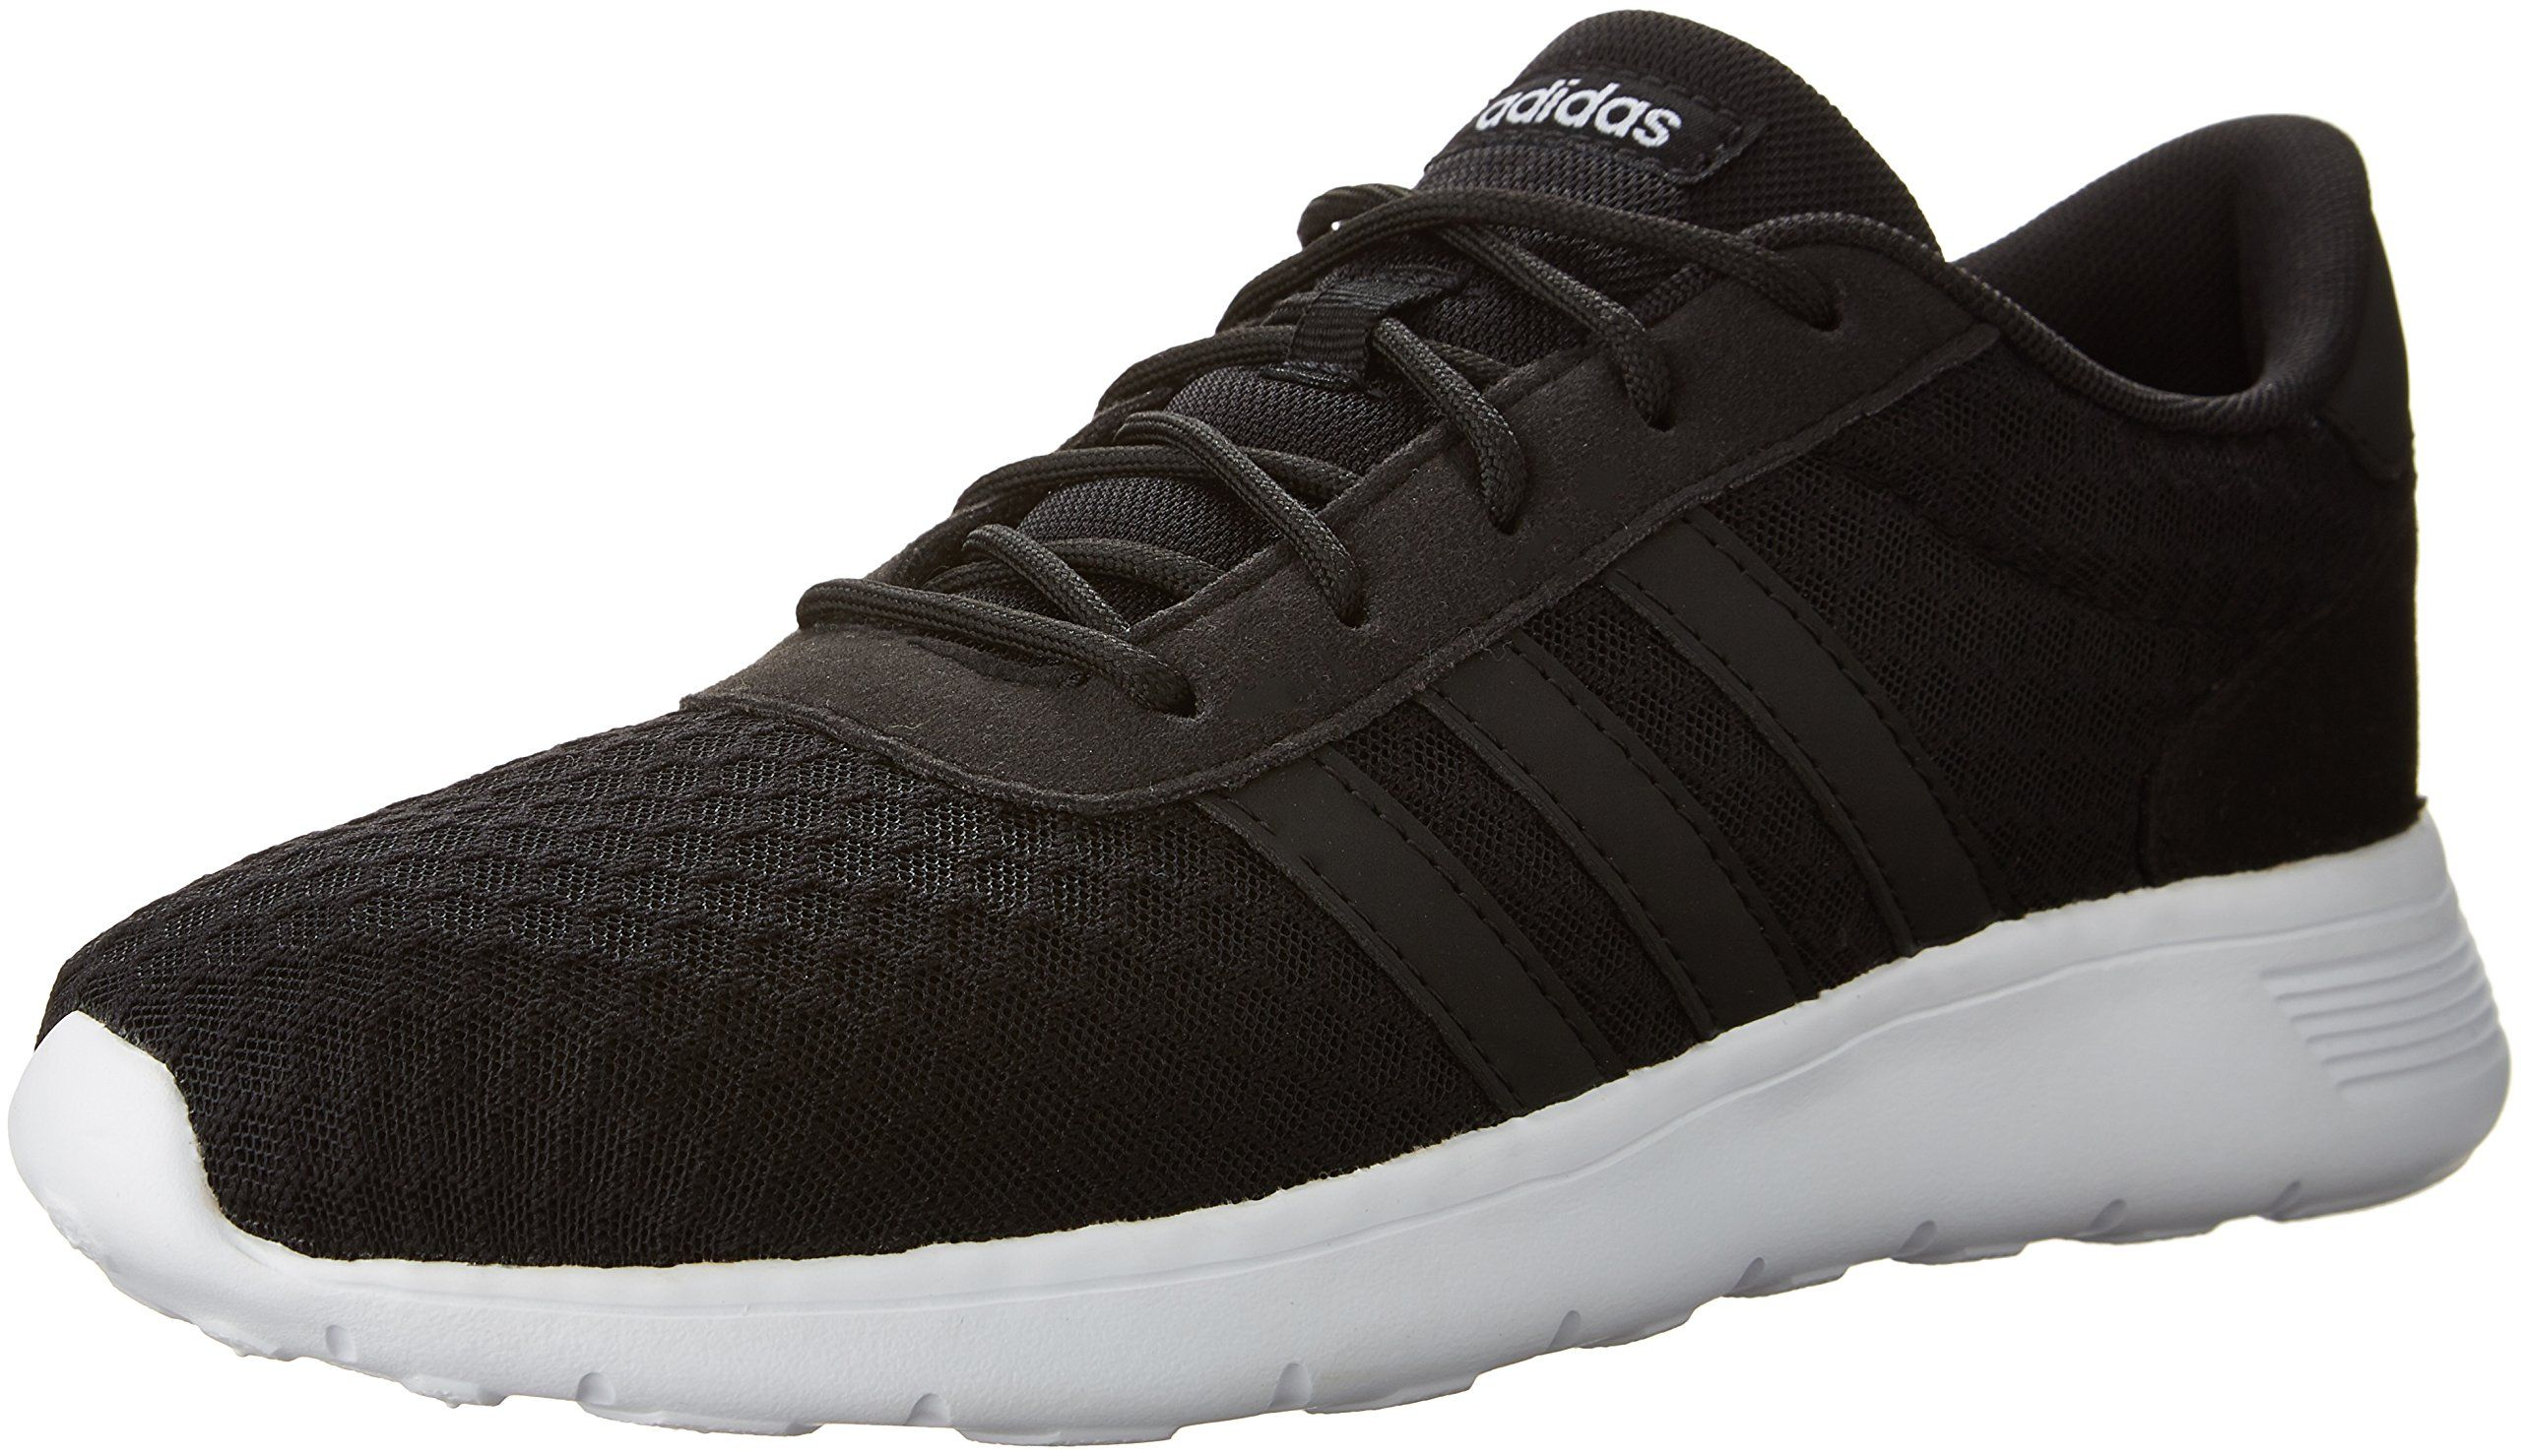 pretty nice 62366 93704 adidas NEO Womens Lite Racer W Sneaker Black White 8.5 M US -- Click image  to review more details. (This is an affiliate link)